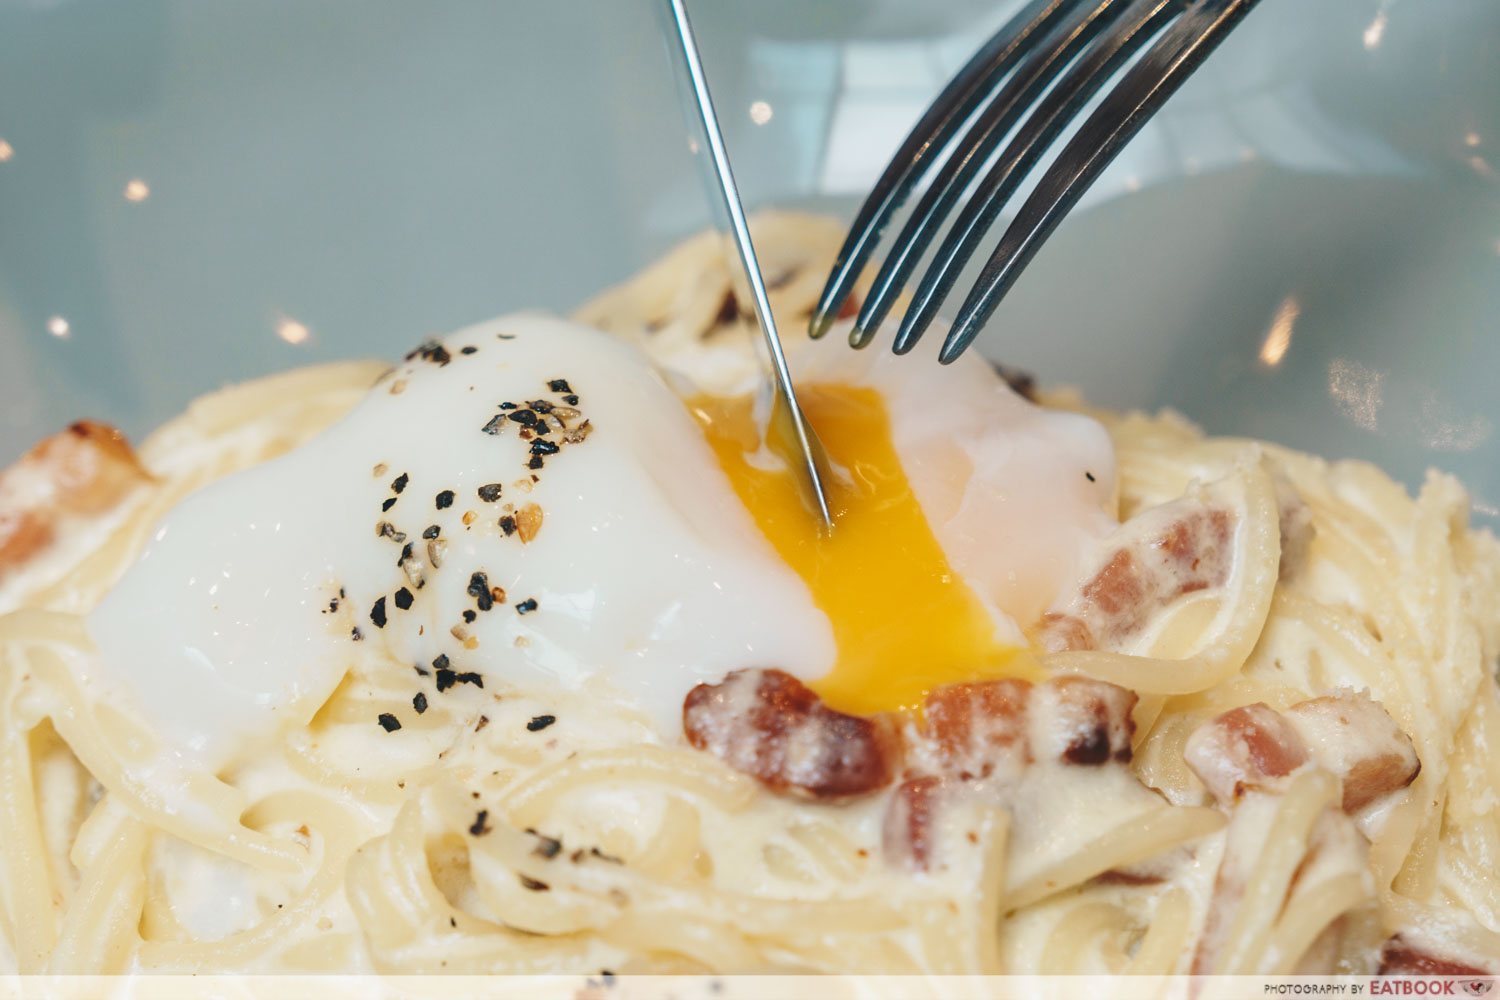 Baristart- Carbonara sliced egg